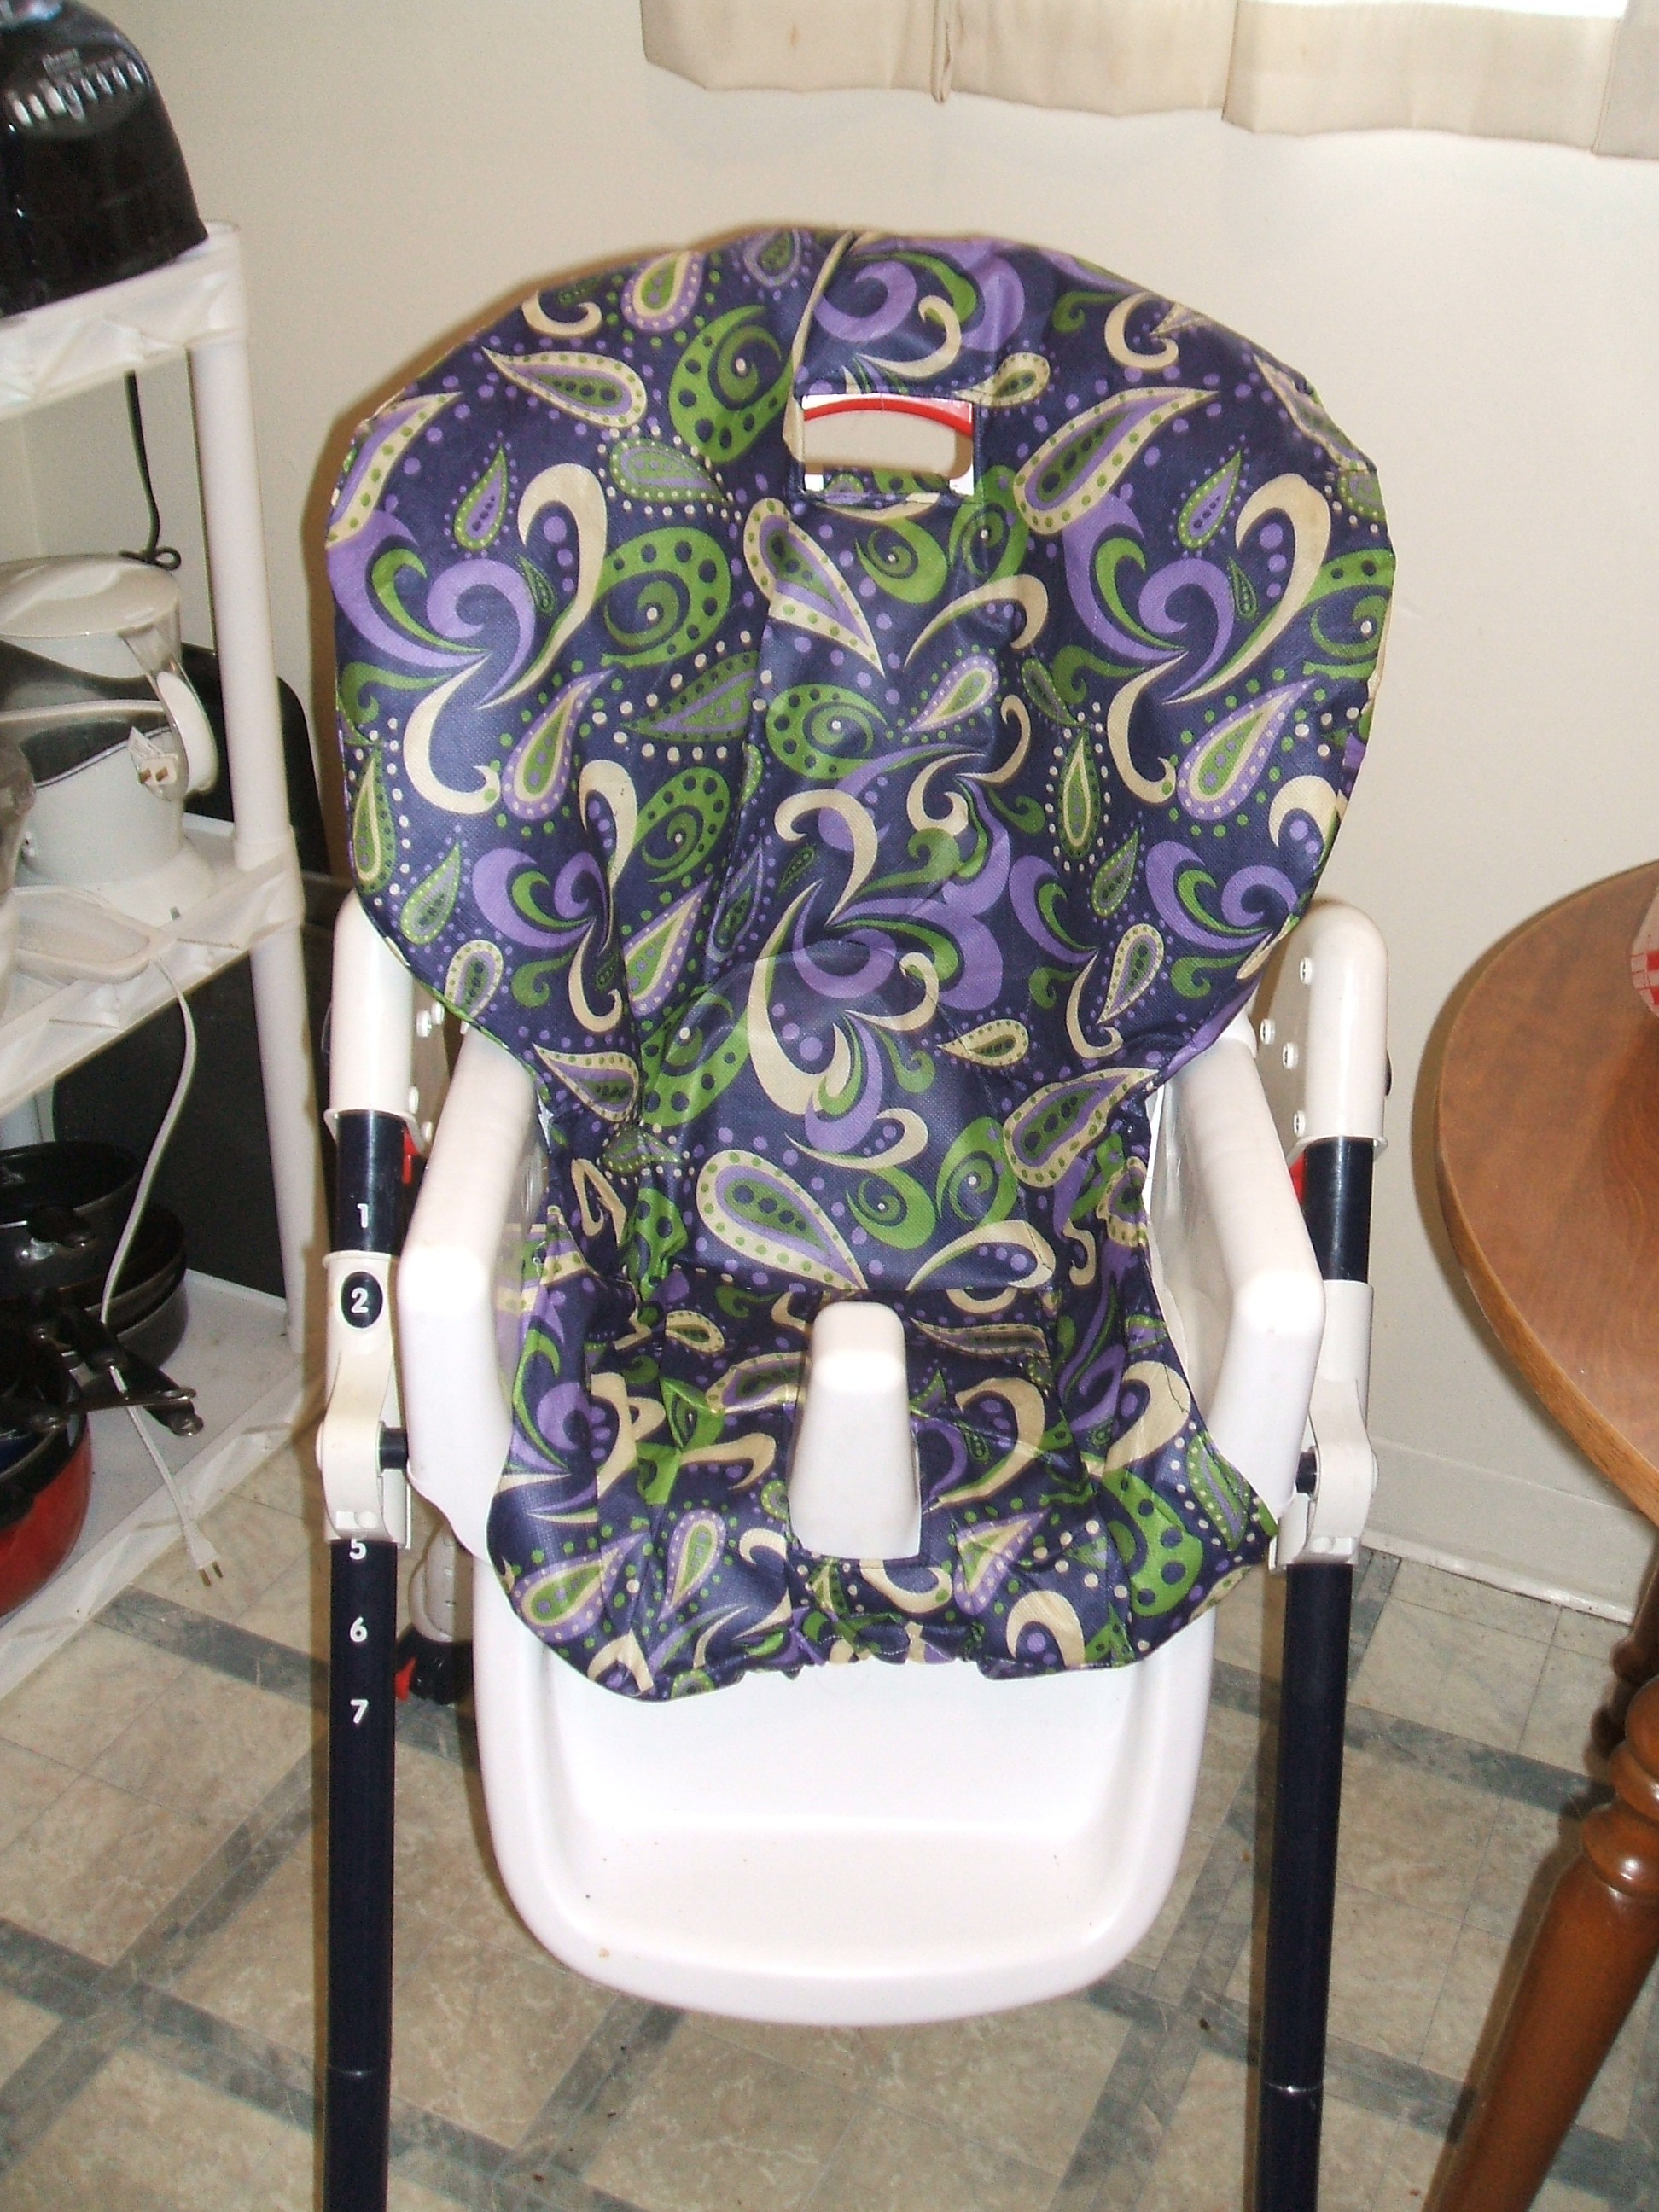 high chair covers for sale french arm chairs diy revamp peek a boo pages patterns